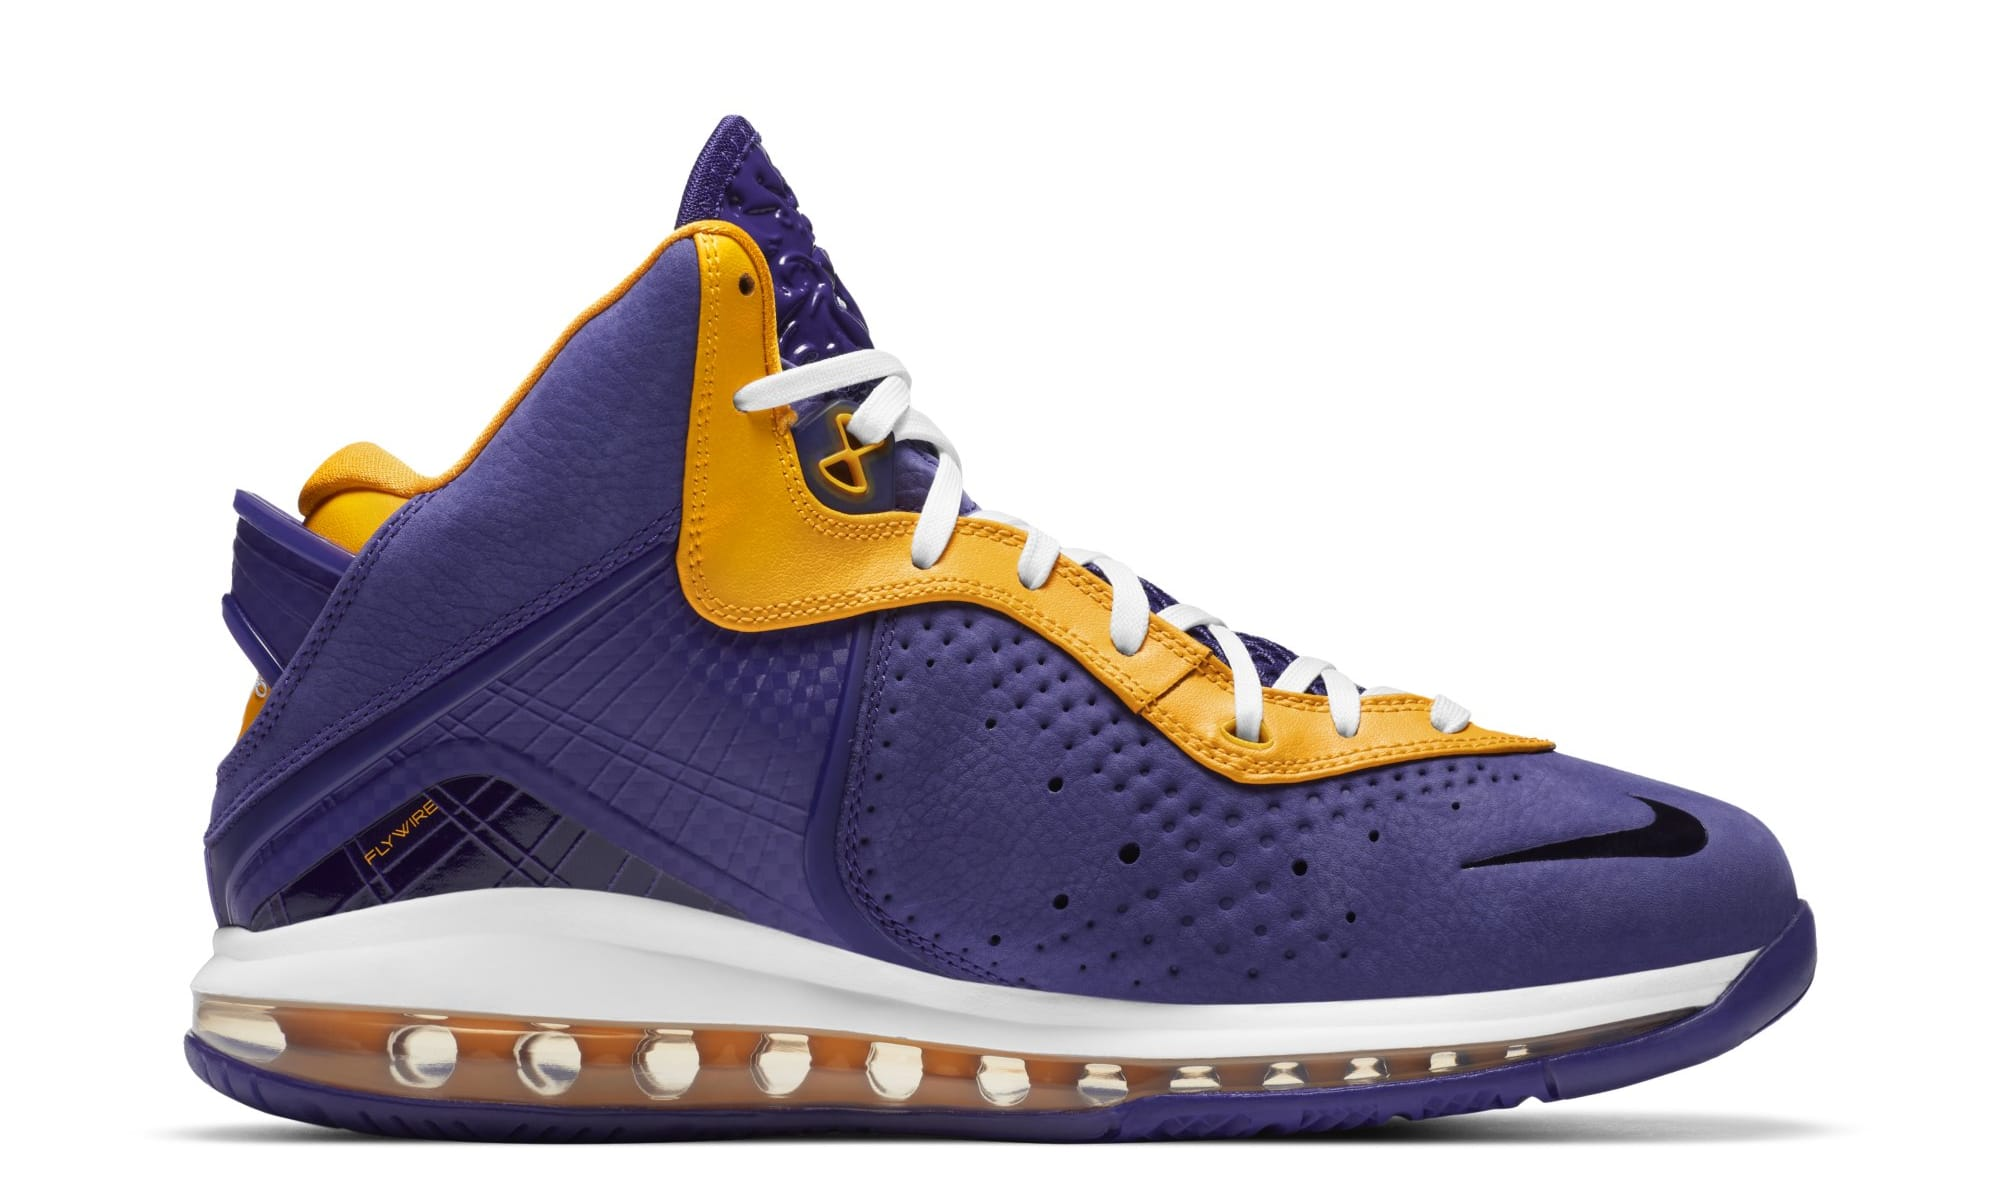 Nike LeBron 8 'Lakers' DC8380-500 (Medial)